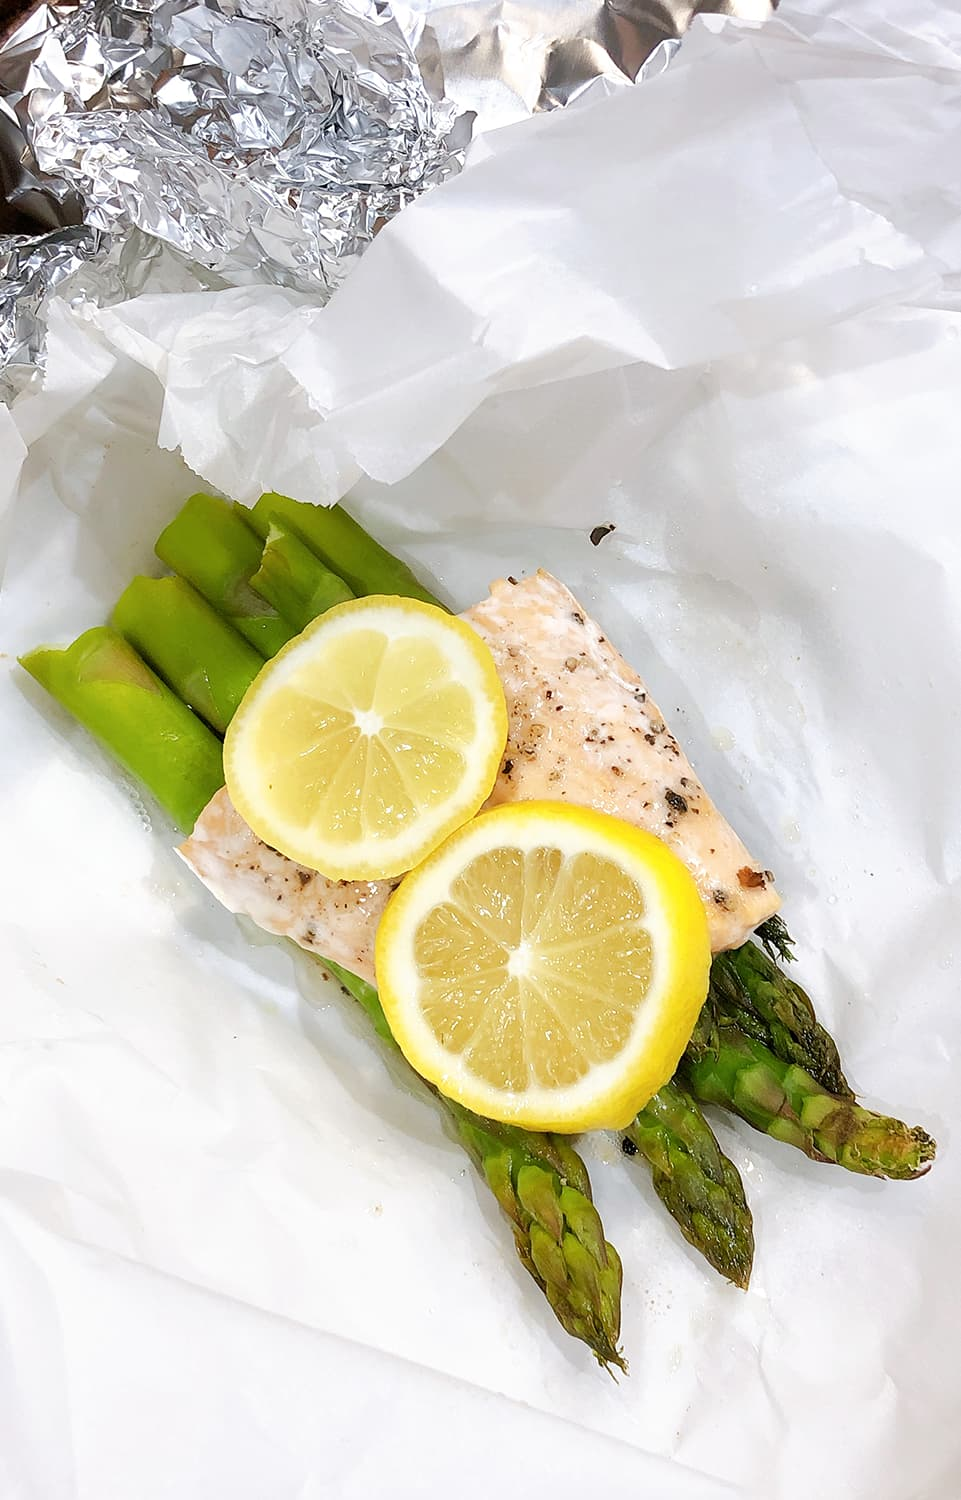 asparagus and salmon with lemon slices on parchment paper